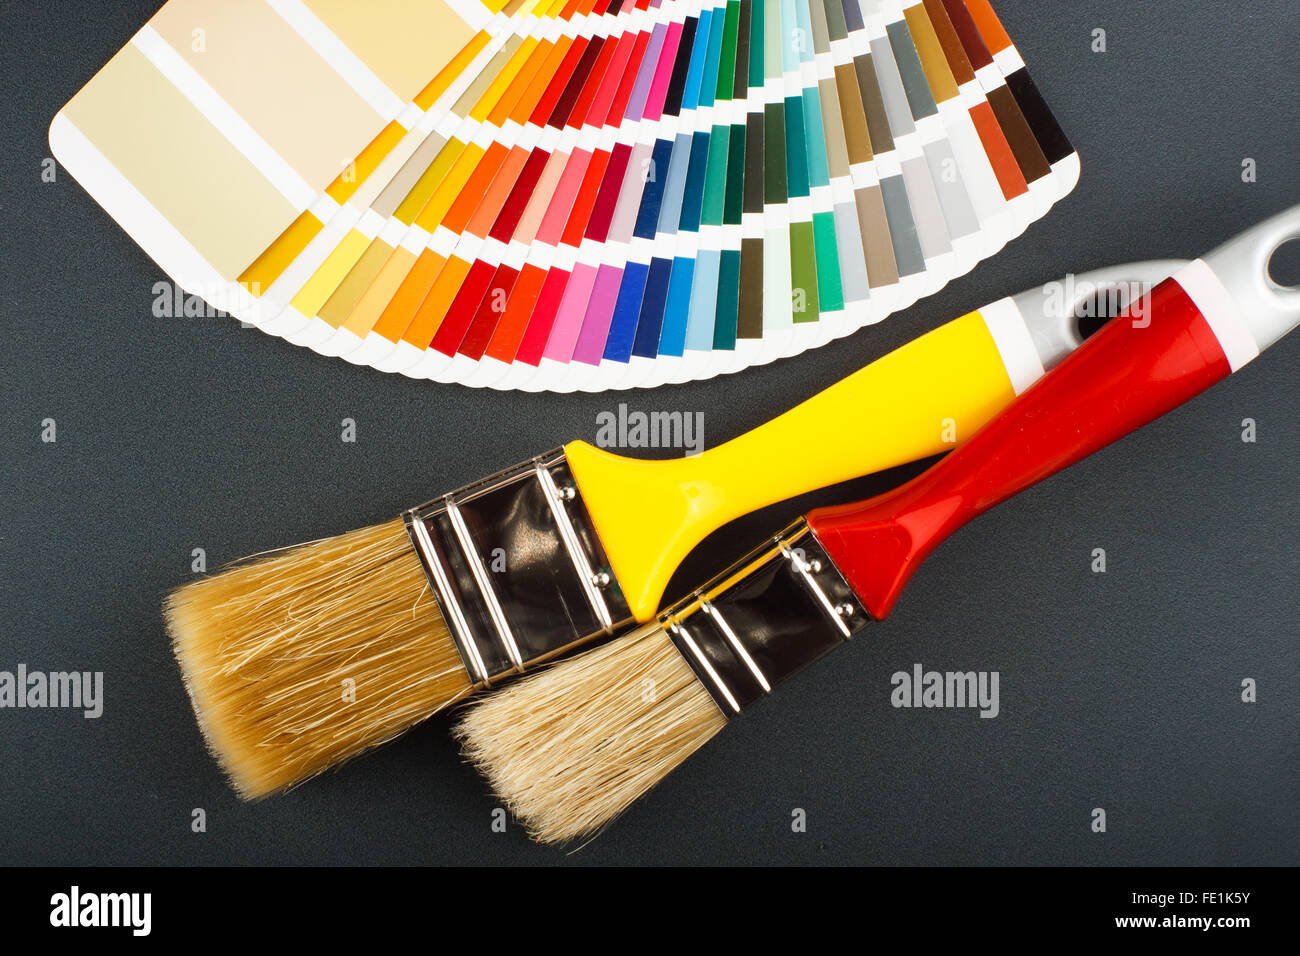 Color card and paint brushes on dark background - Stock Image